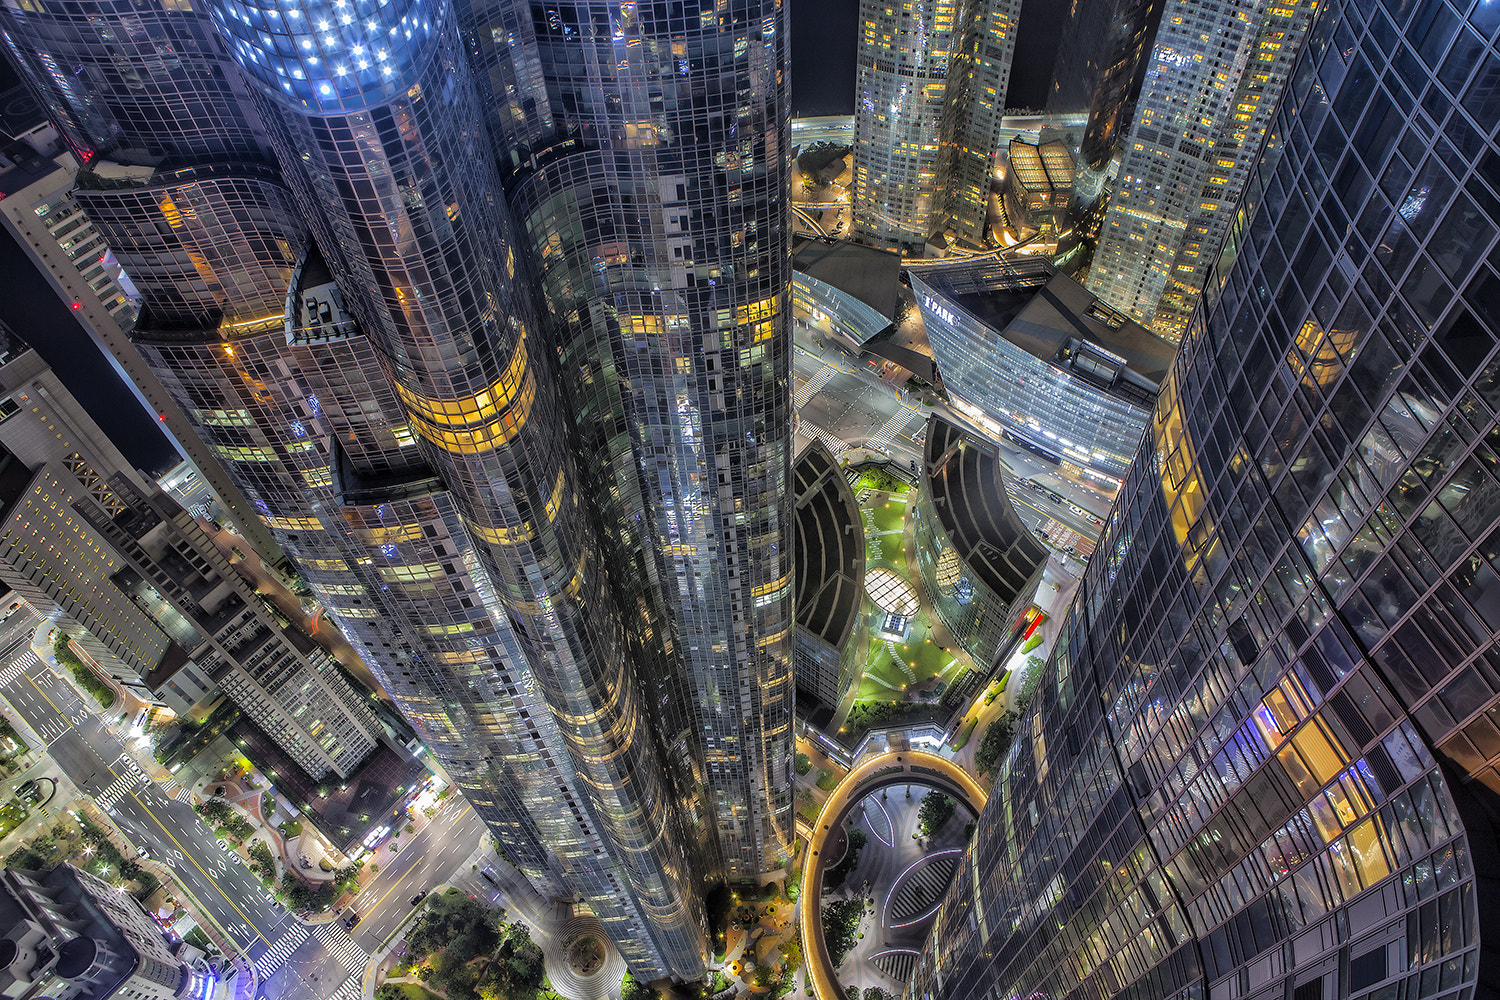 Photograph The Future City by Sky Choi on 500px